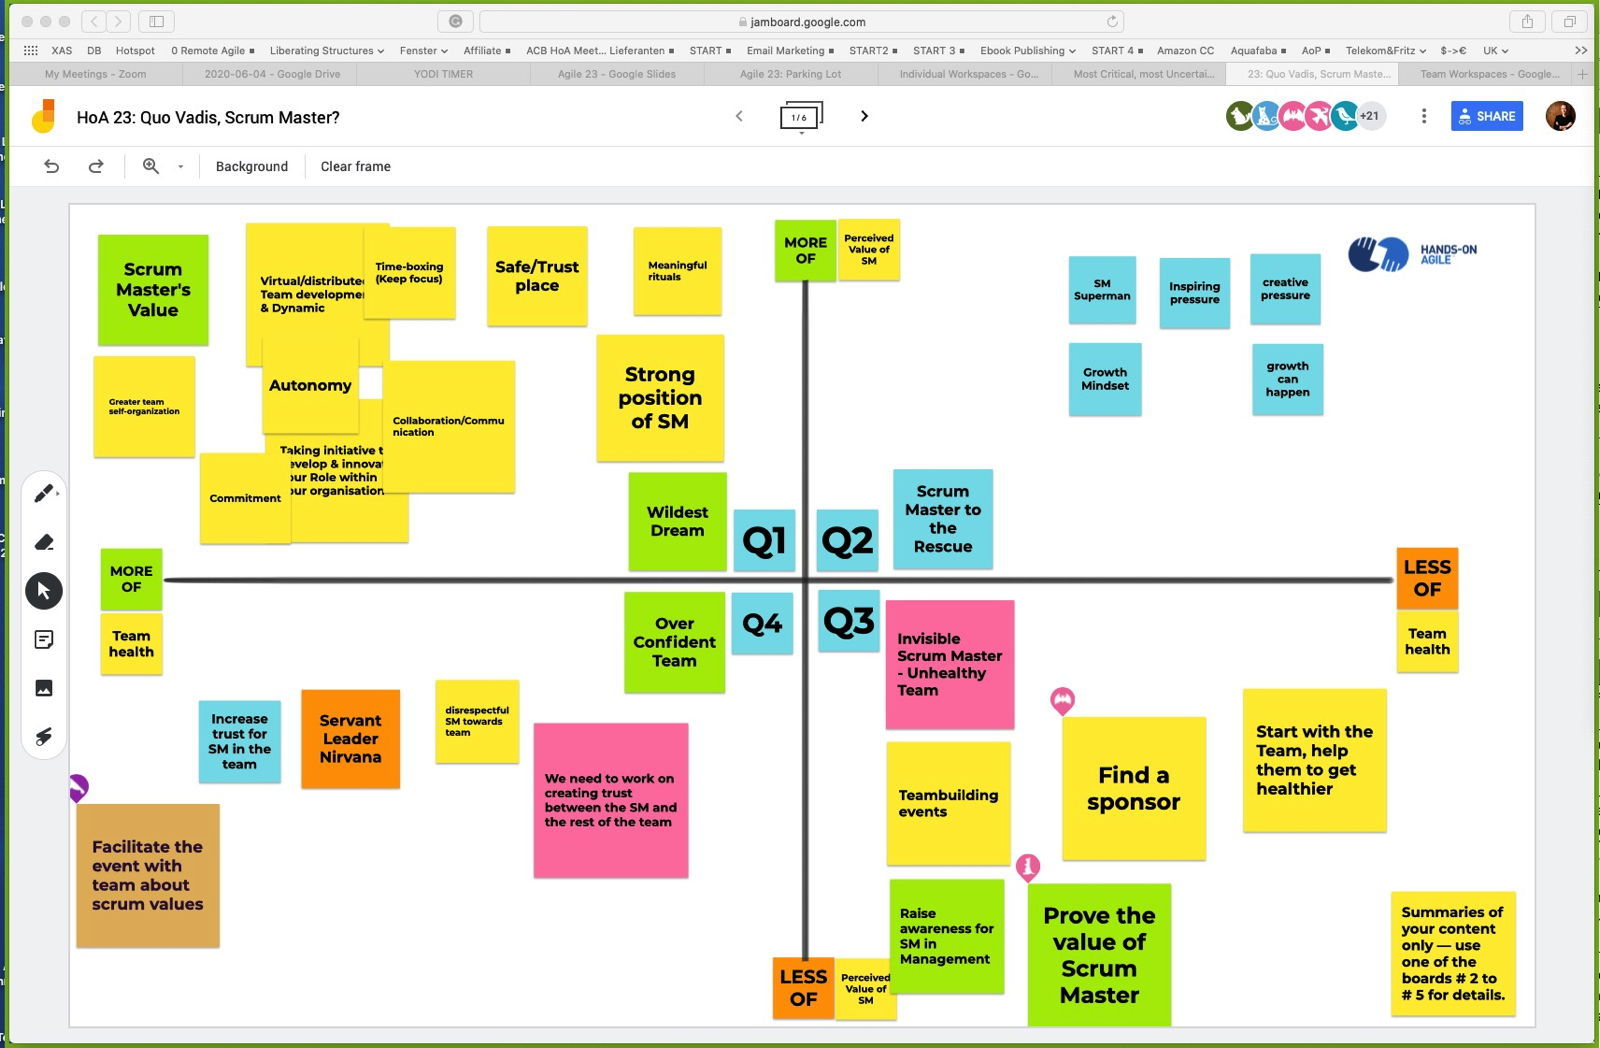 Quo Vadis, Scrum Master: The Results of Our Virtual Strategy Session